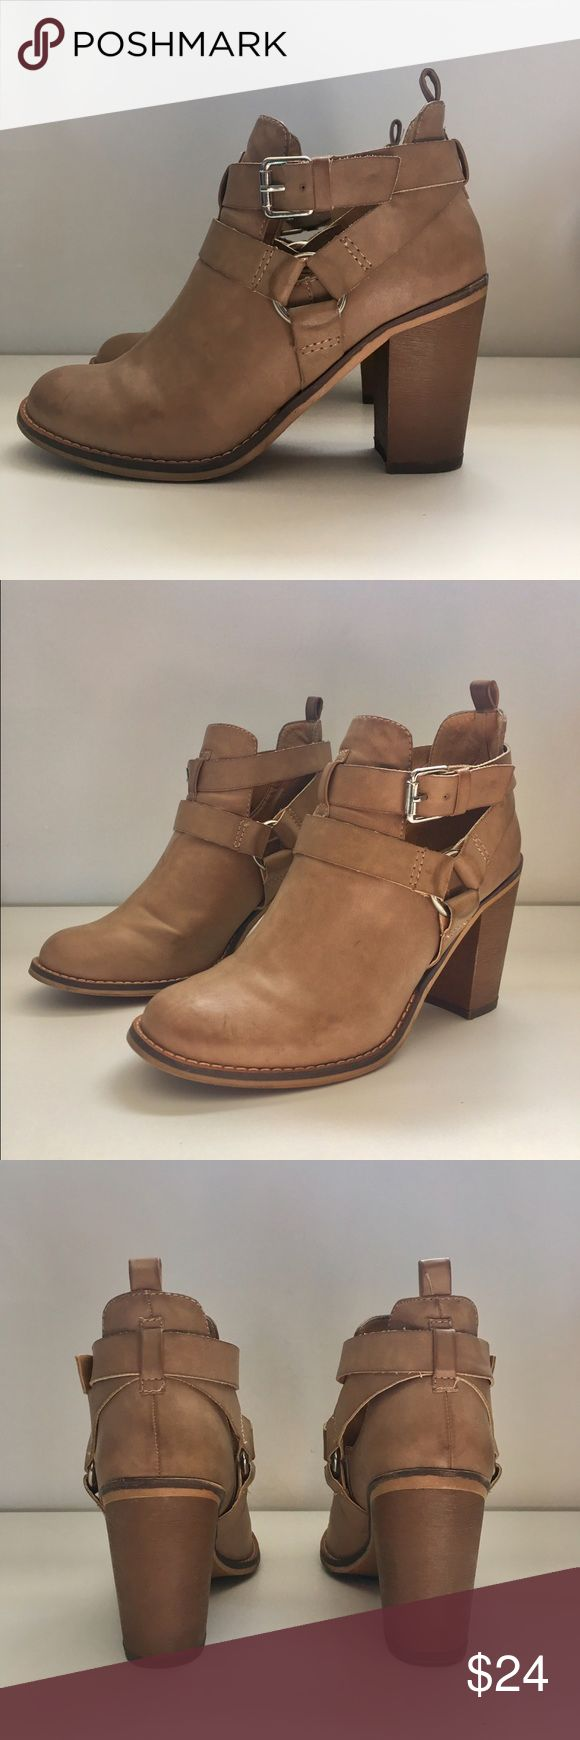 Report- Light tan heeled booties size 8 Light tan faux leather booties with a 3.25 heel by Report. Size 8. In good condition Report Shoes Heeled Boots